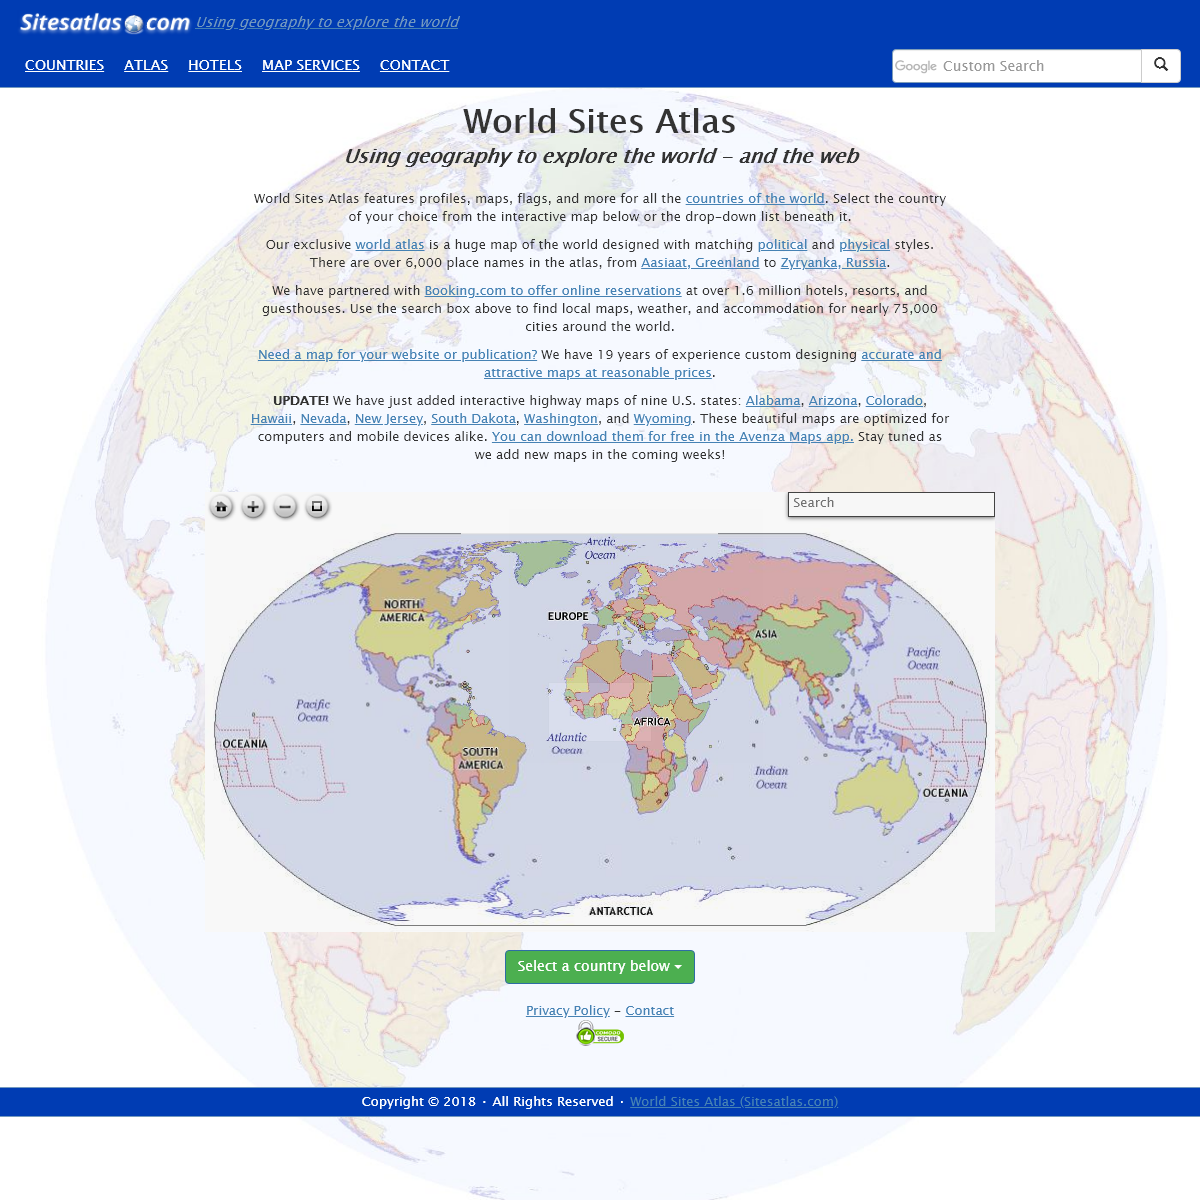 World Sites Atlas (Sitesatlas.com)- maps, hotels, information, and more.